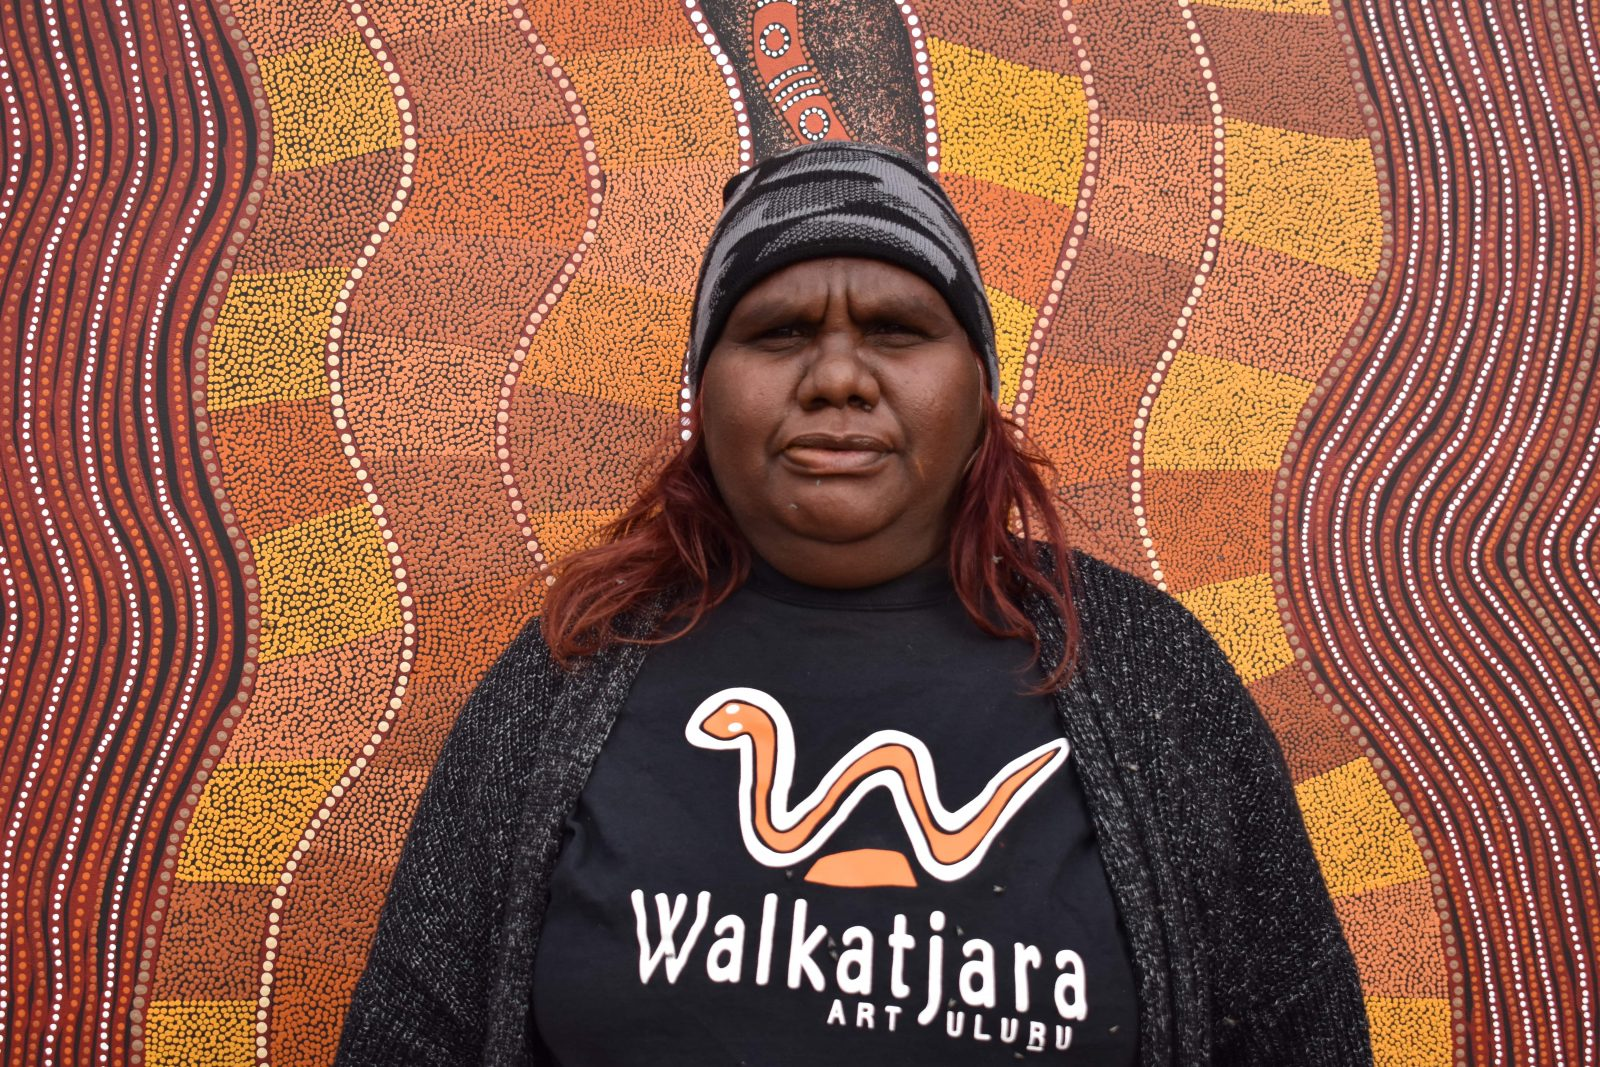 Walkatjara Art provides visitors a unique opportunity to experience the production of Anangu Art.